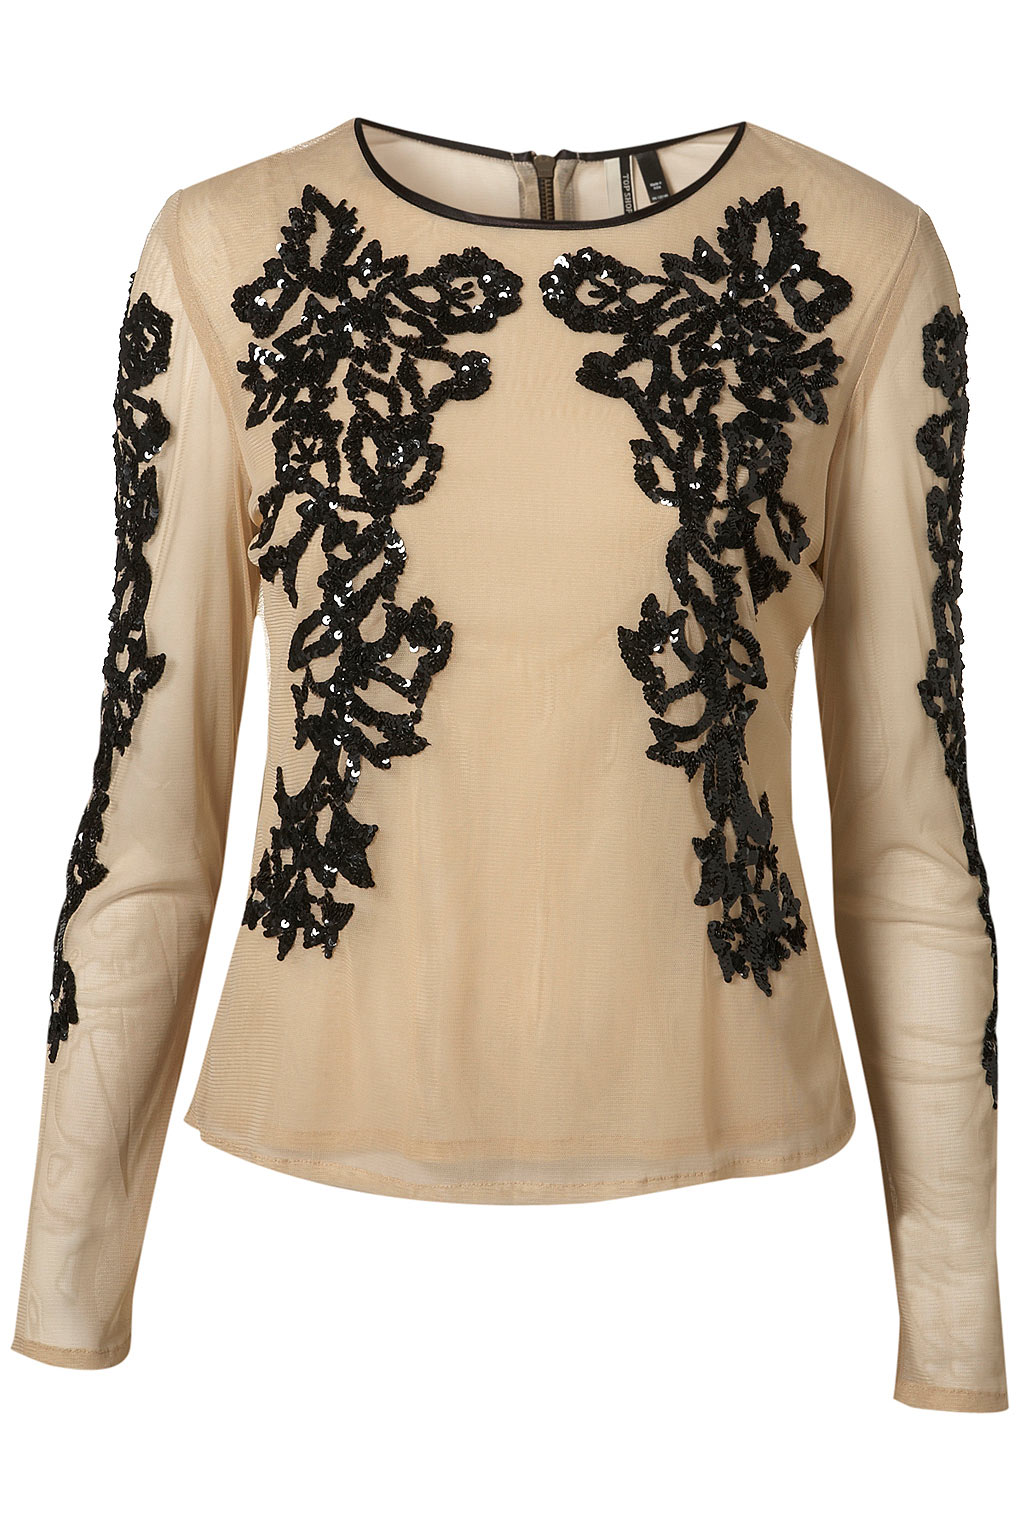 Lyst Topshop Long Sleeve Mesh Sequin Blouse In Natural